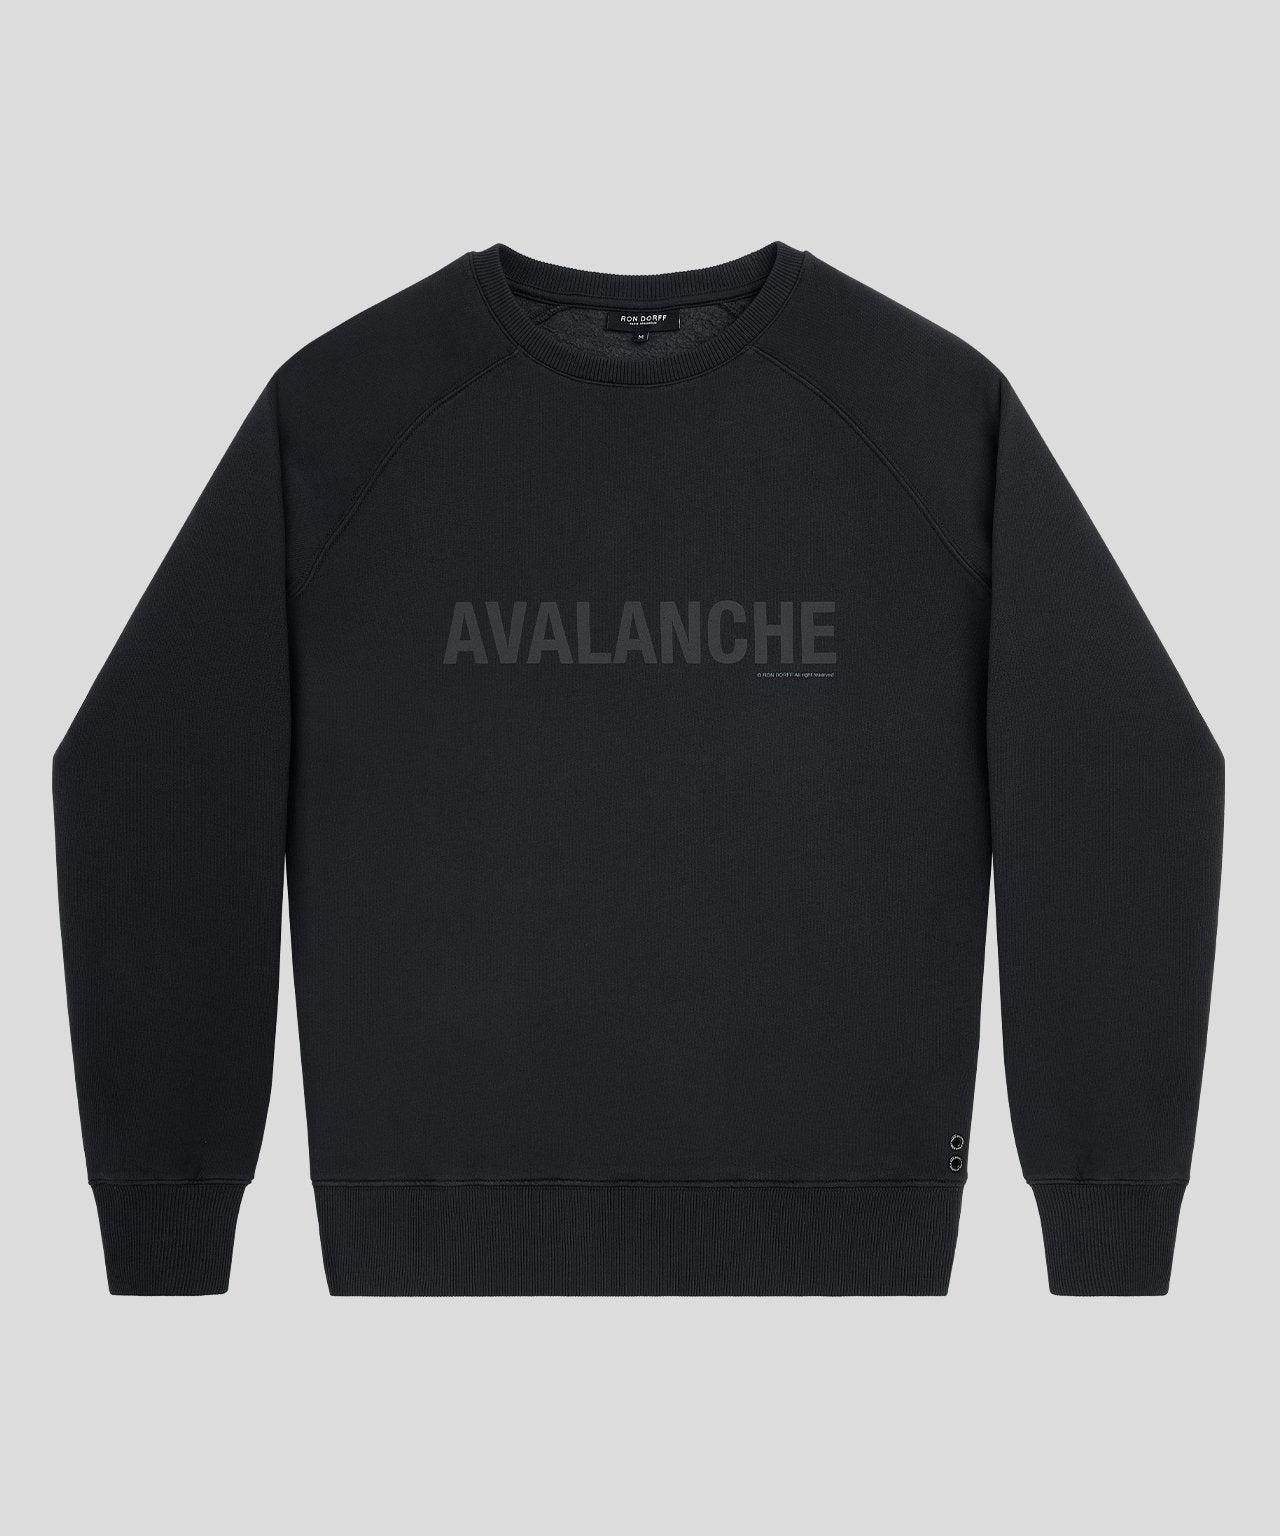 Sweatshirt AVALANCHE - black